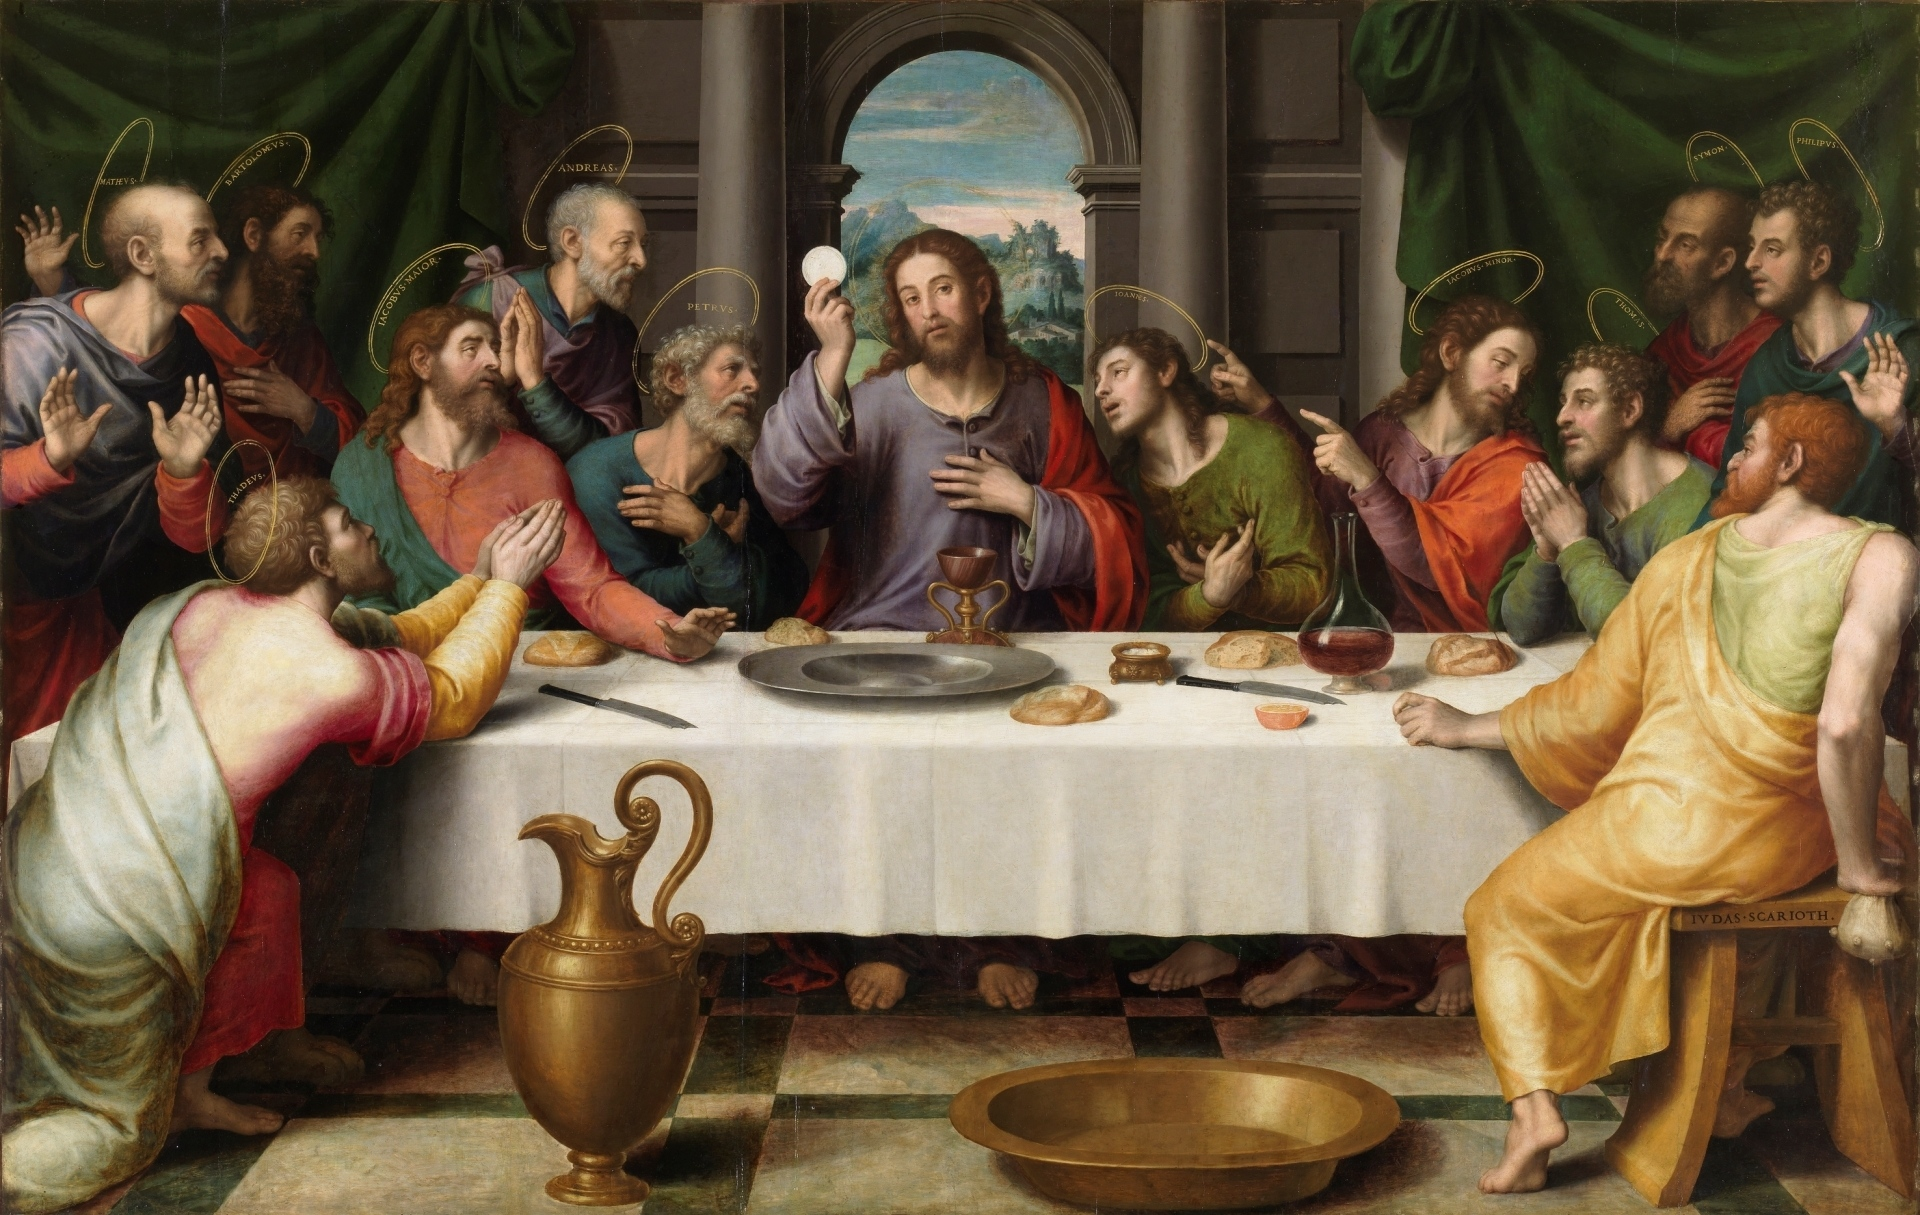 Última Cena (Last Supper) by Juan de Juanes